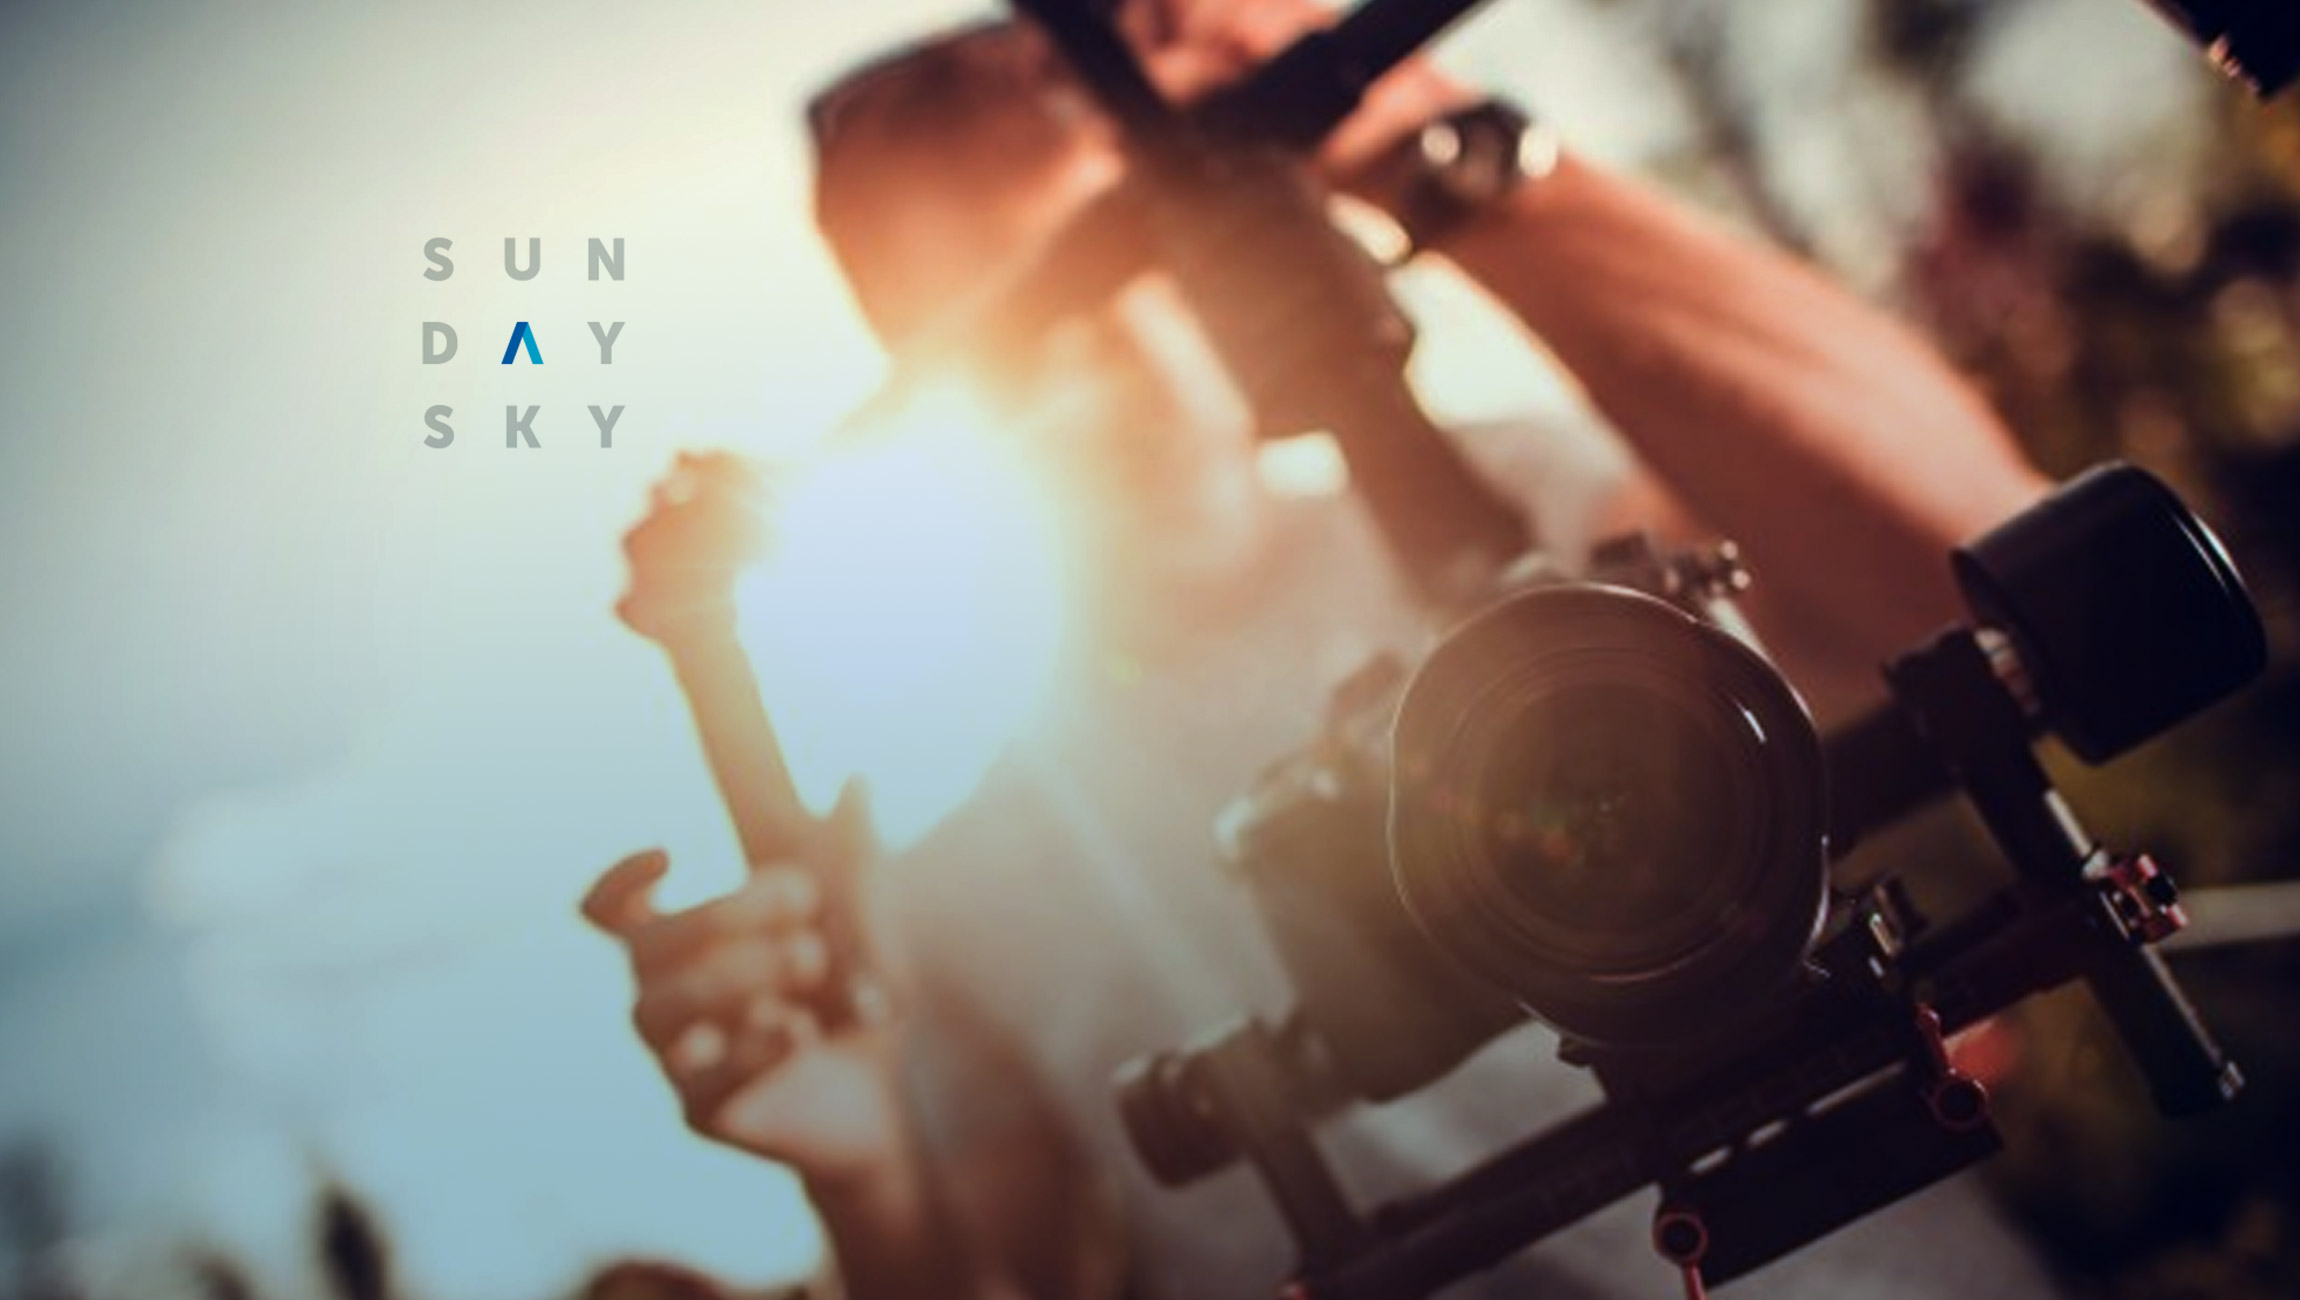 More than 70% of the Brand Leaders for Video or Personalization Reach Customers with Personalized Video, Reveals SundaySky